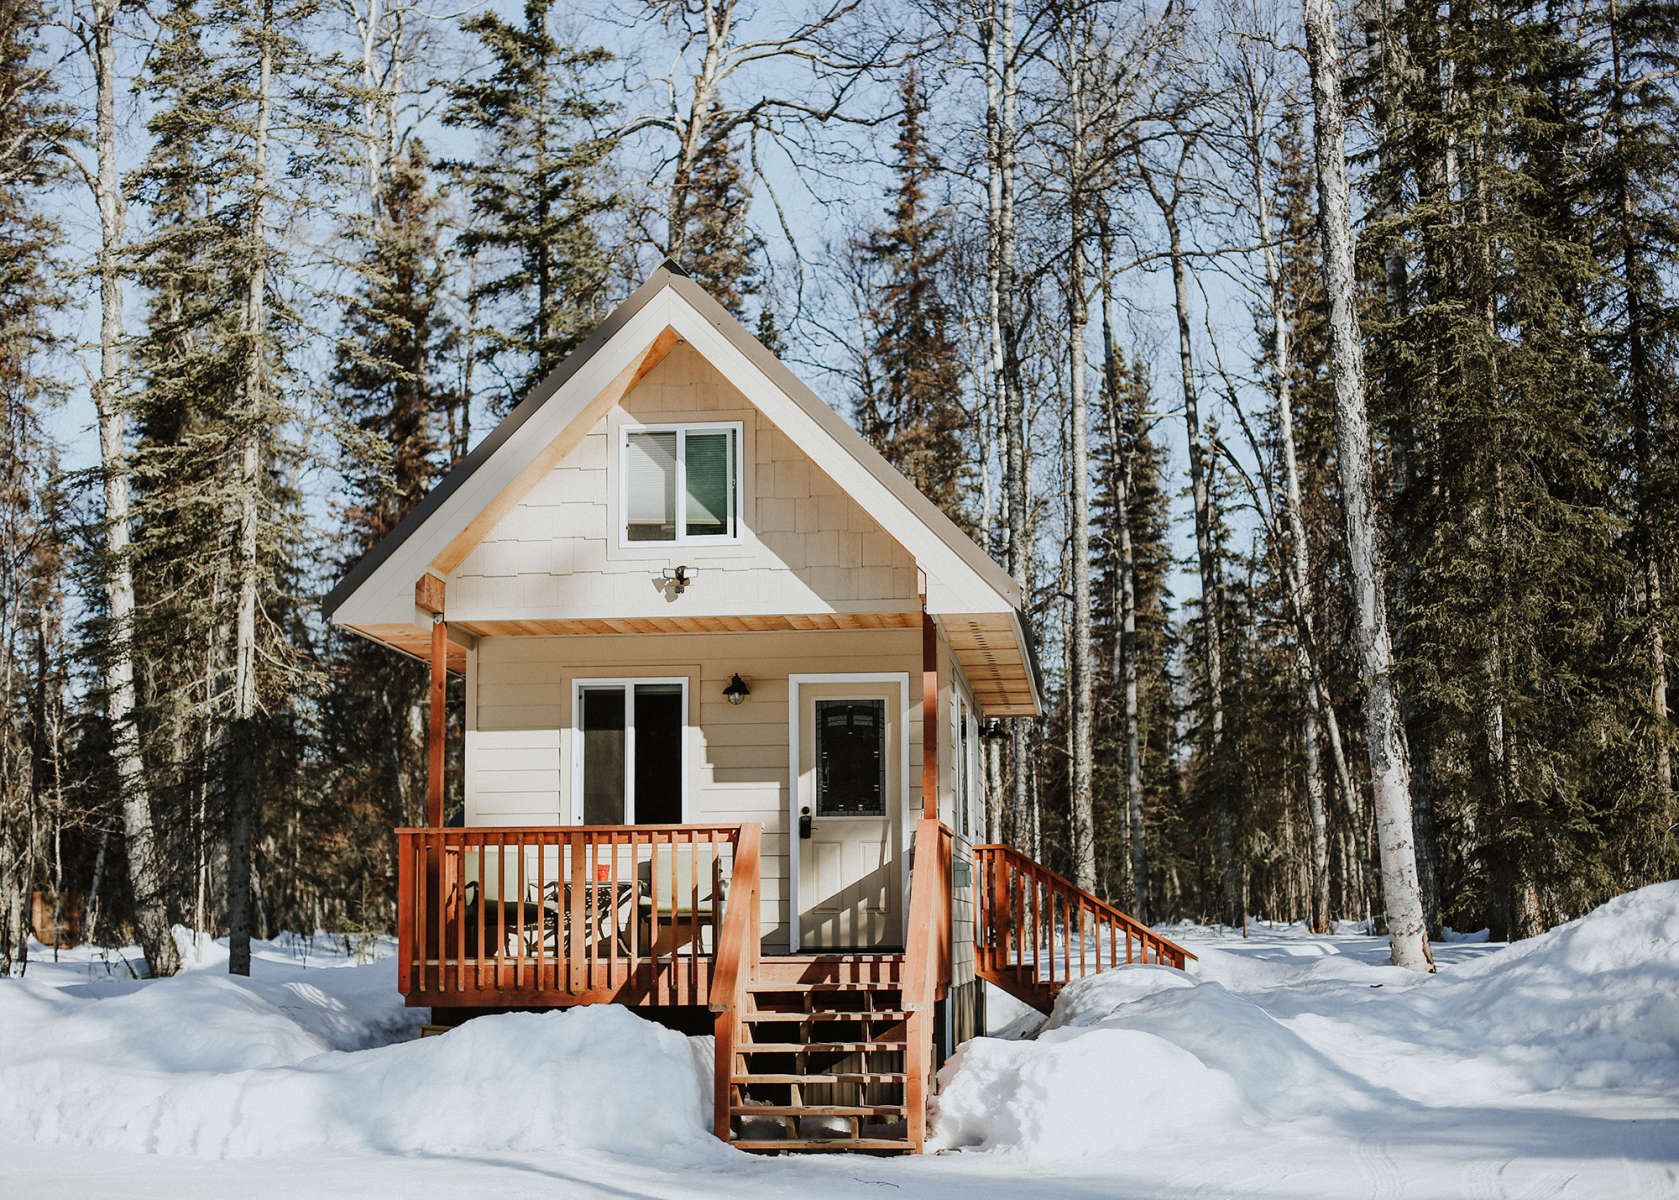 Talkeetna Tiny House CabinRV Talkeetna Tiny House Cabin RV AK 1